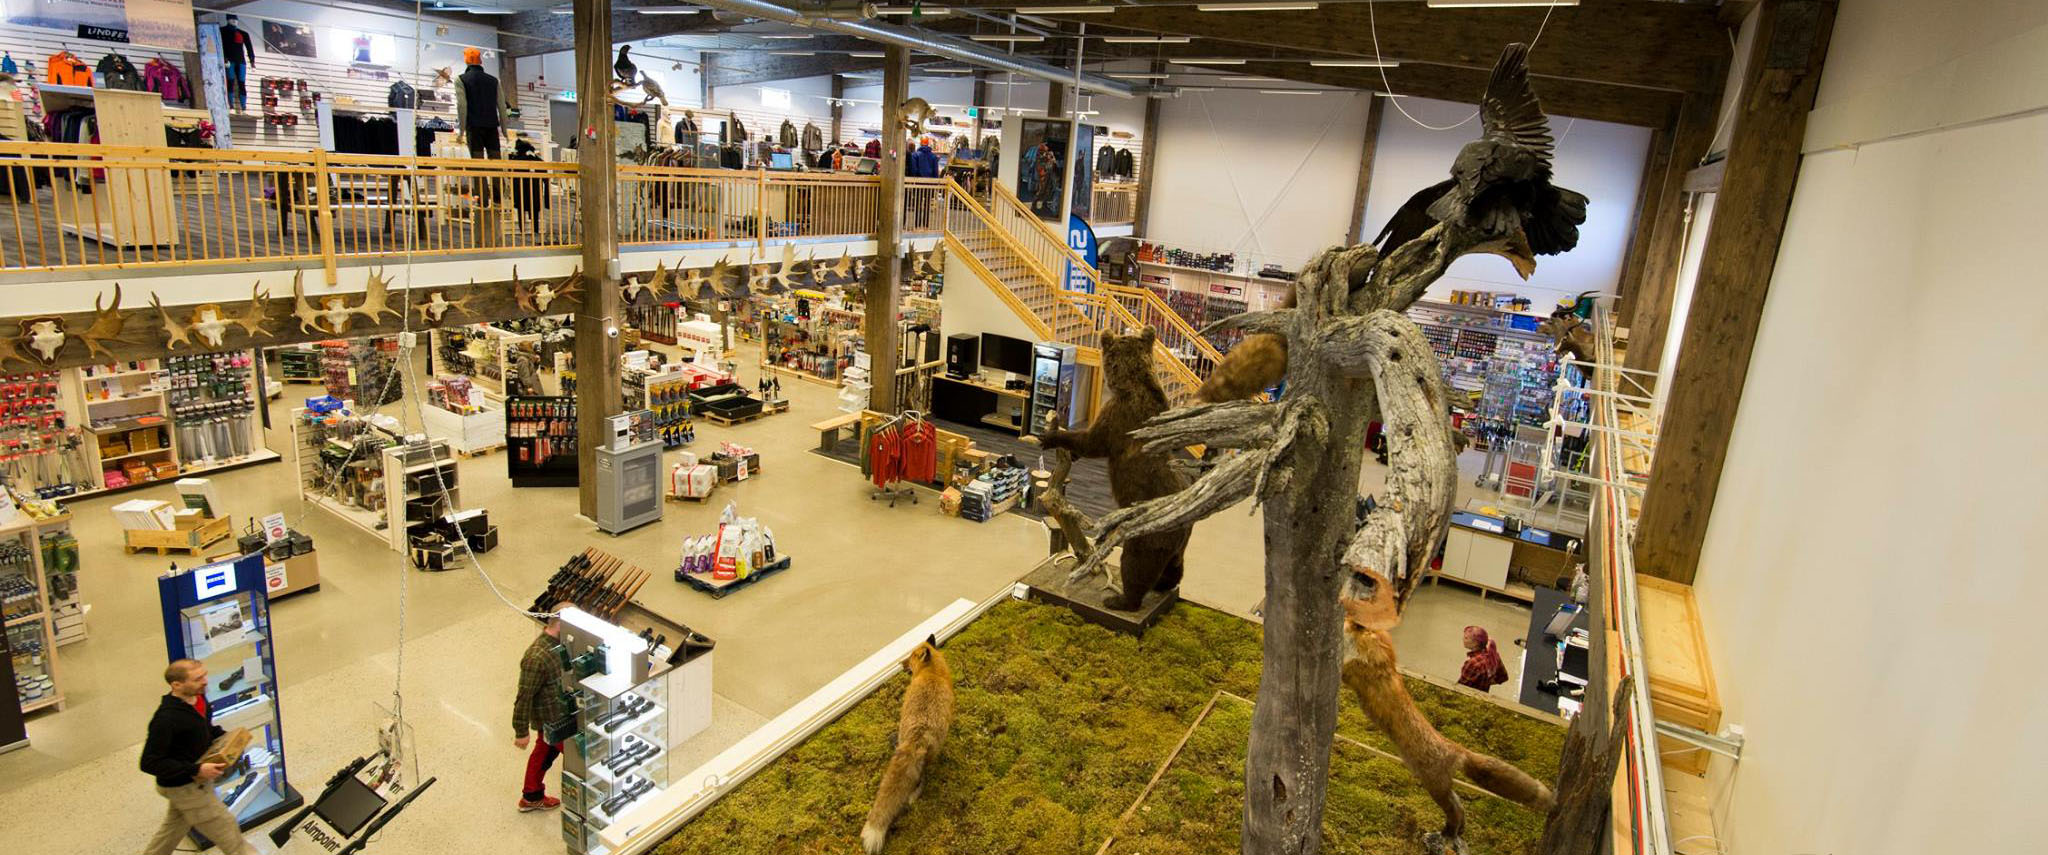 Bird's eye view of the store